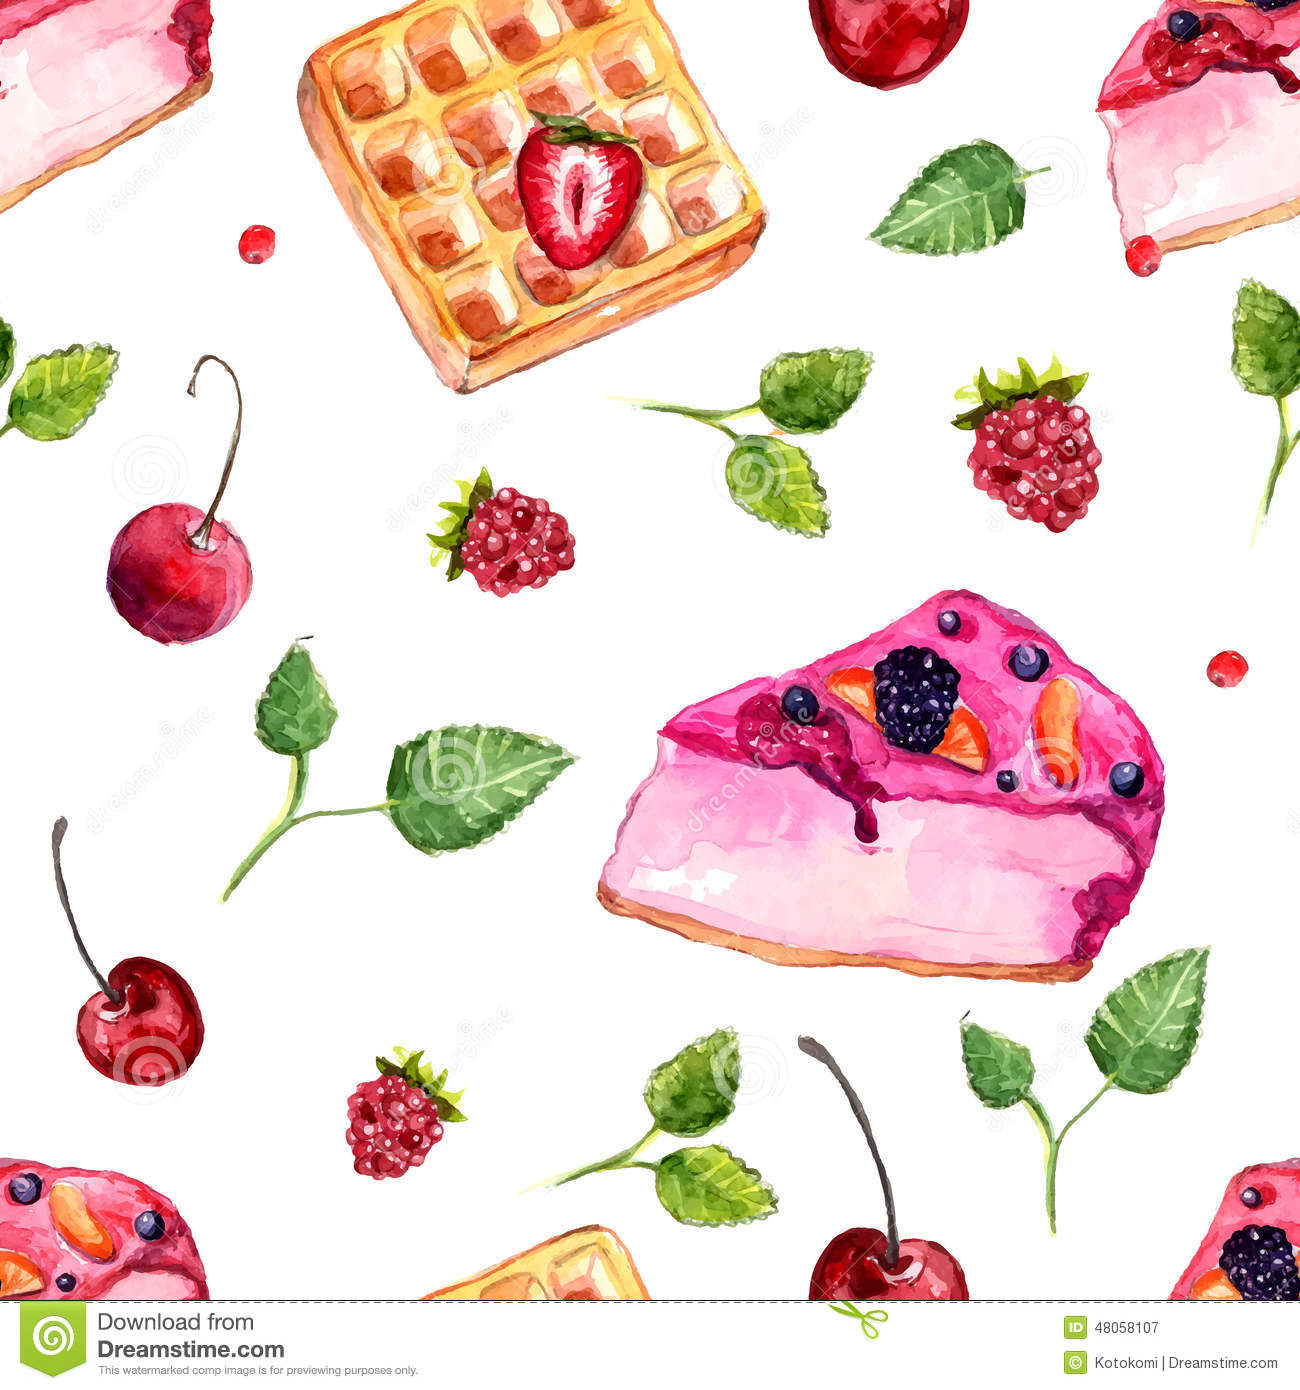 Seamless Pattern With Hand Drawn Watercolor Ice Cream: Watercolor Desserts And Berries Seamless Pattern. Stock